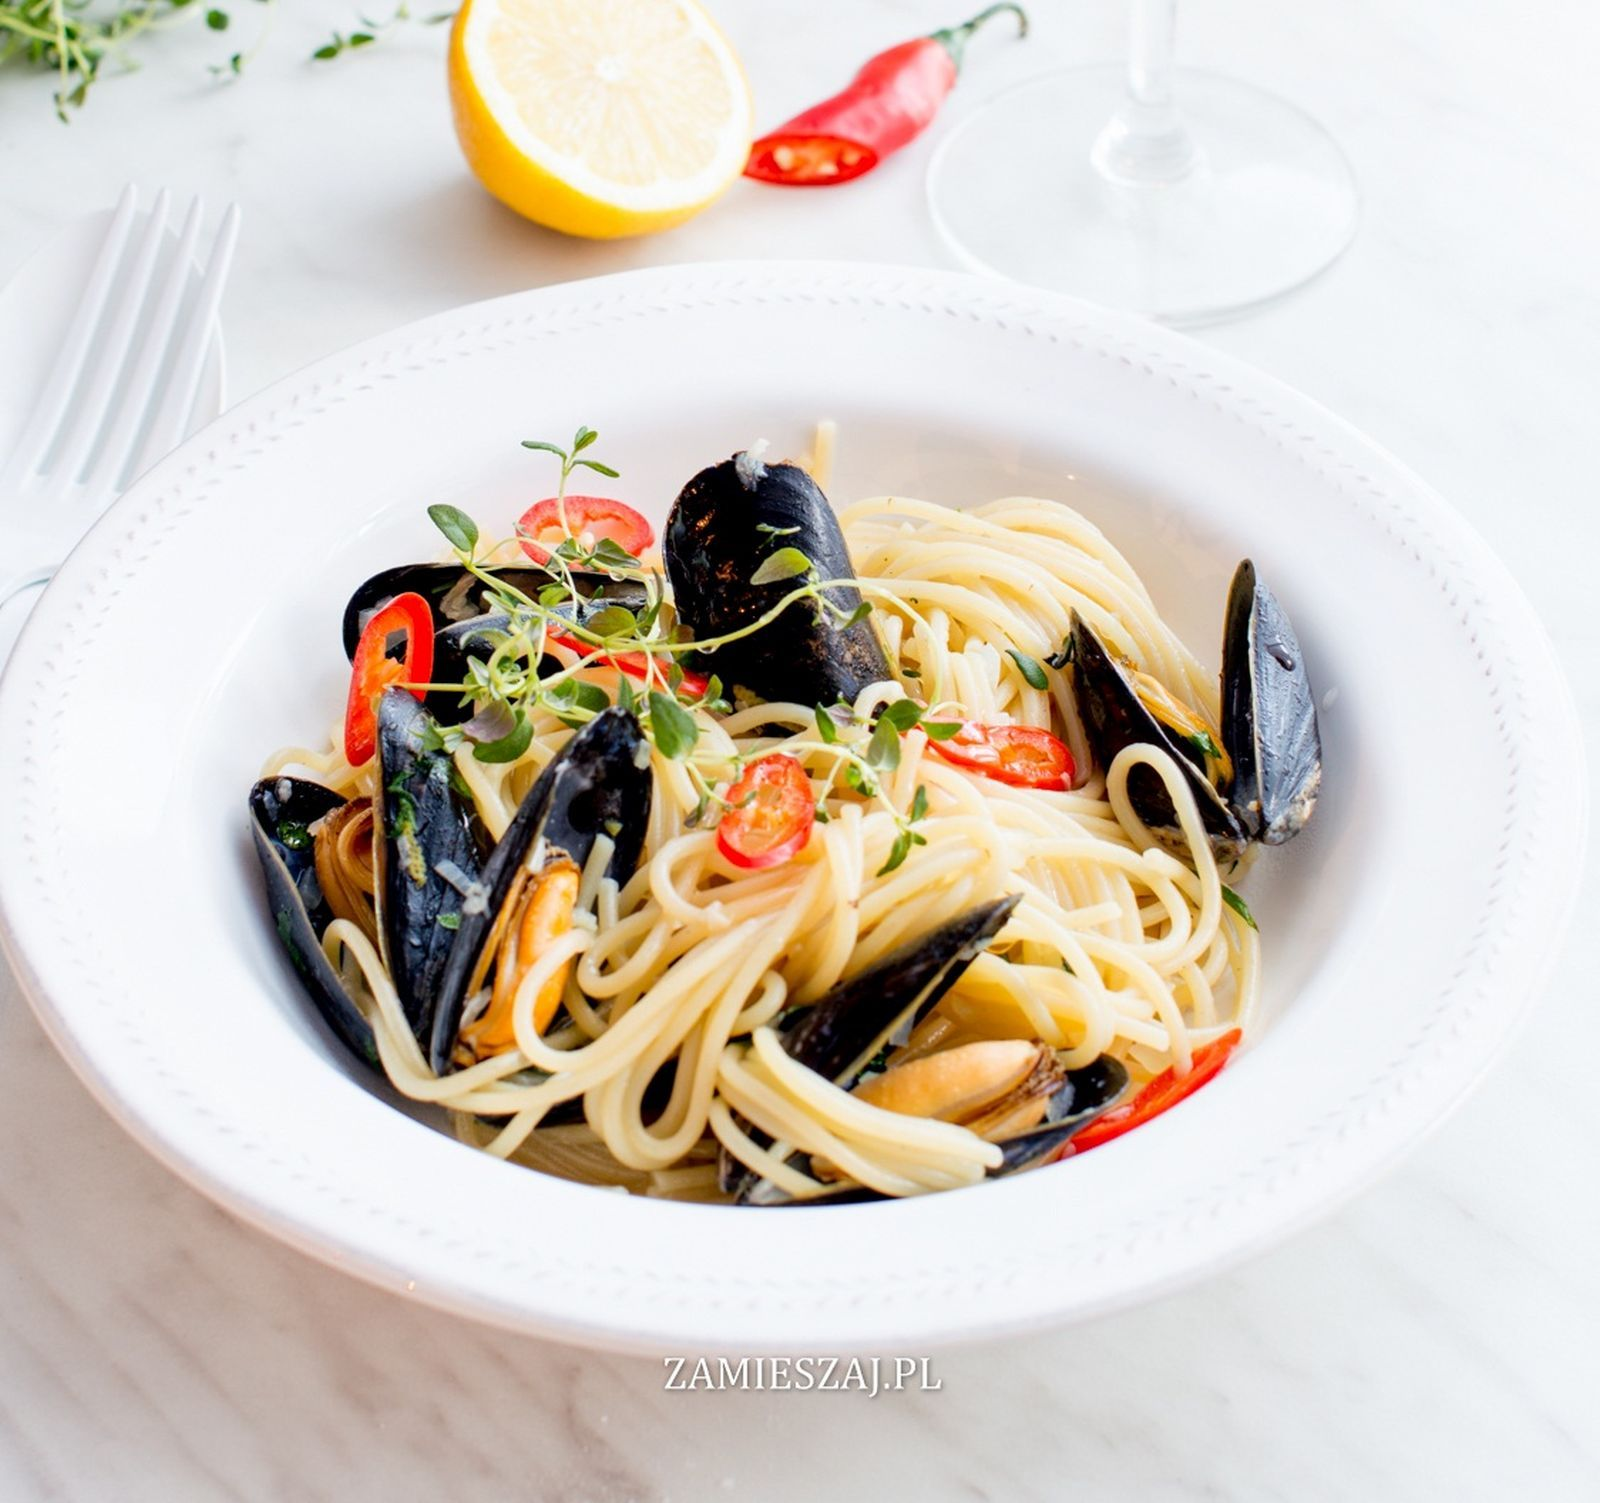 Spaghetti with mussels, chilli, parsley and lemon